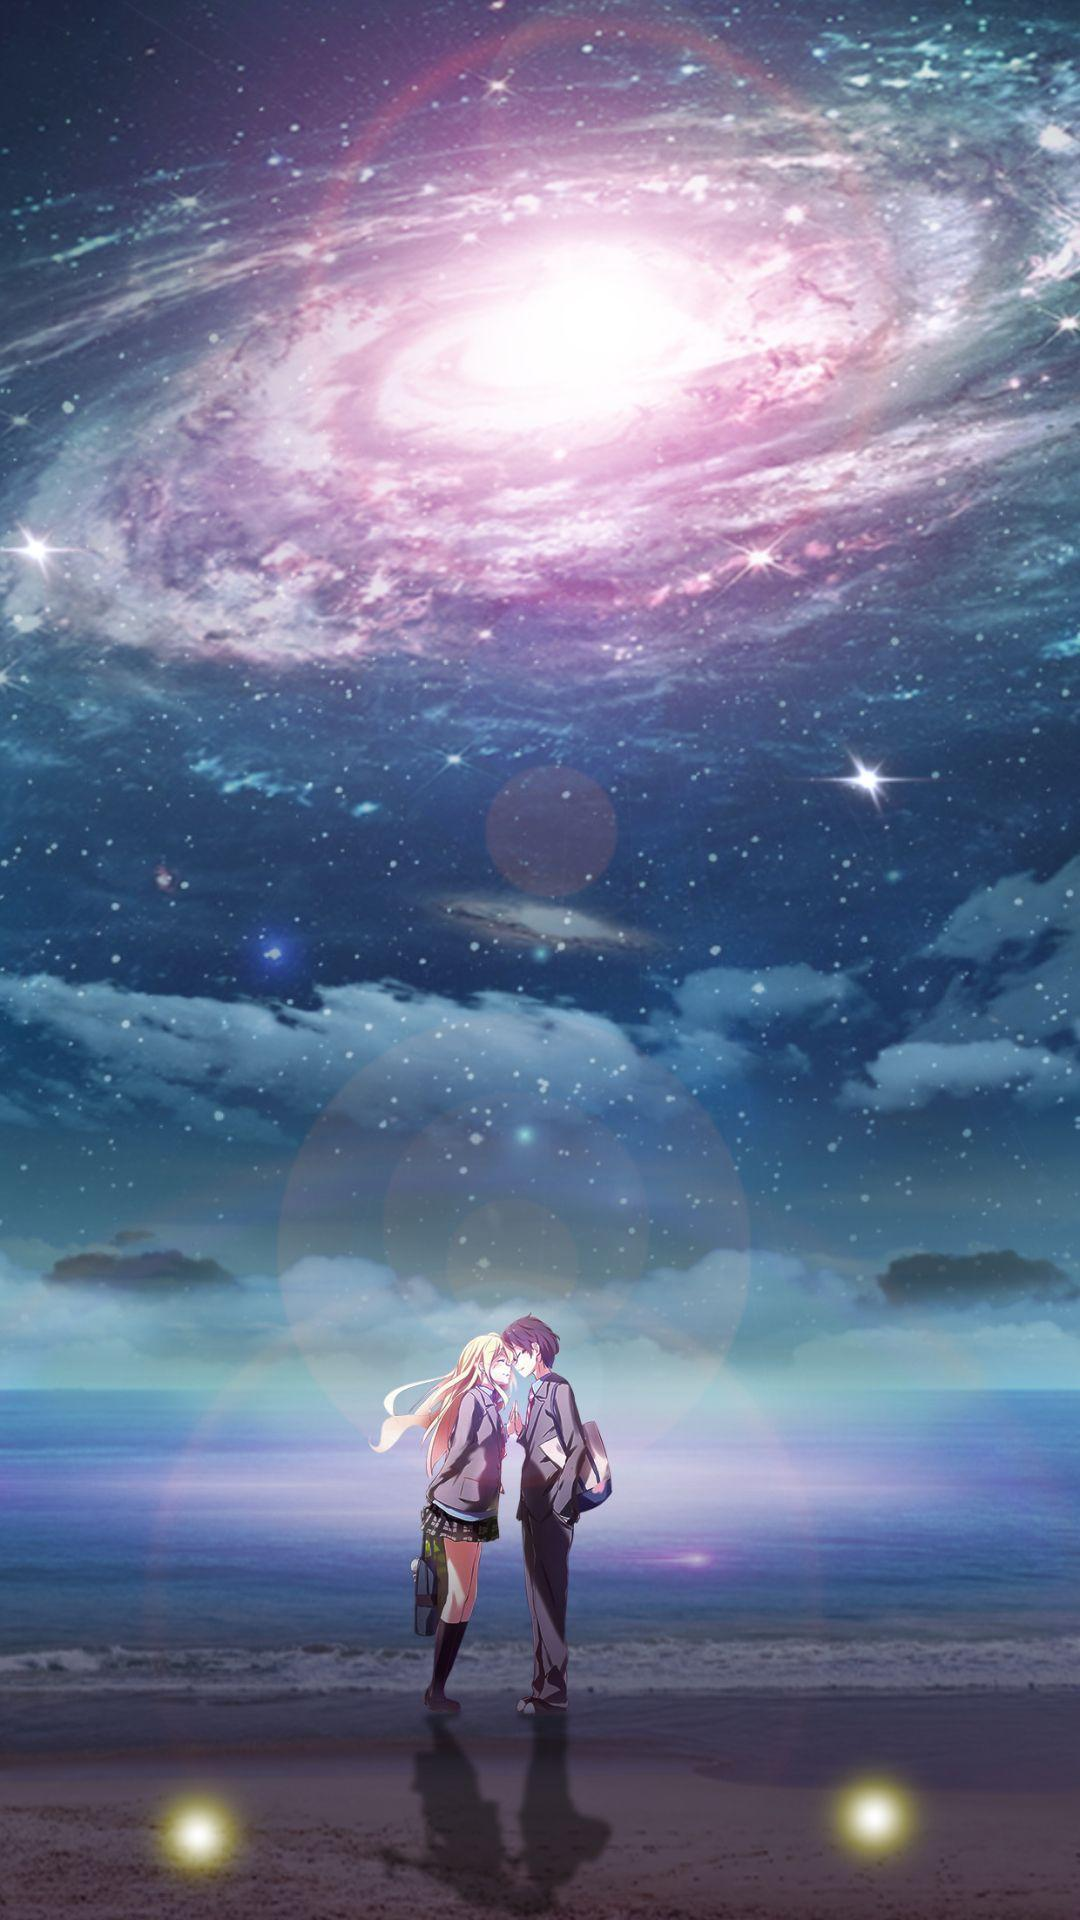 Iphone Your Lie In April Wallpapers Wallpaper Cave